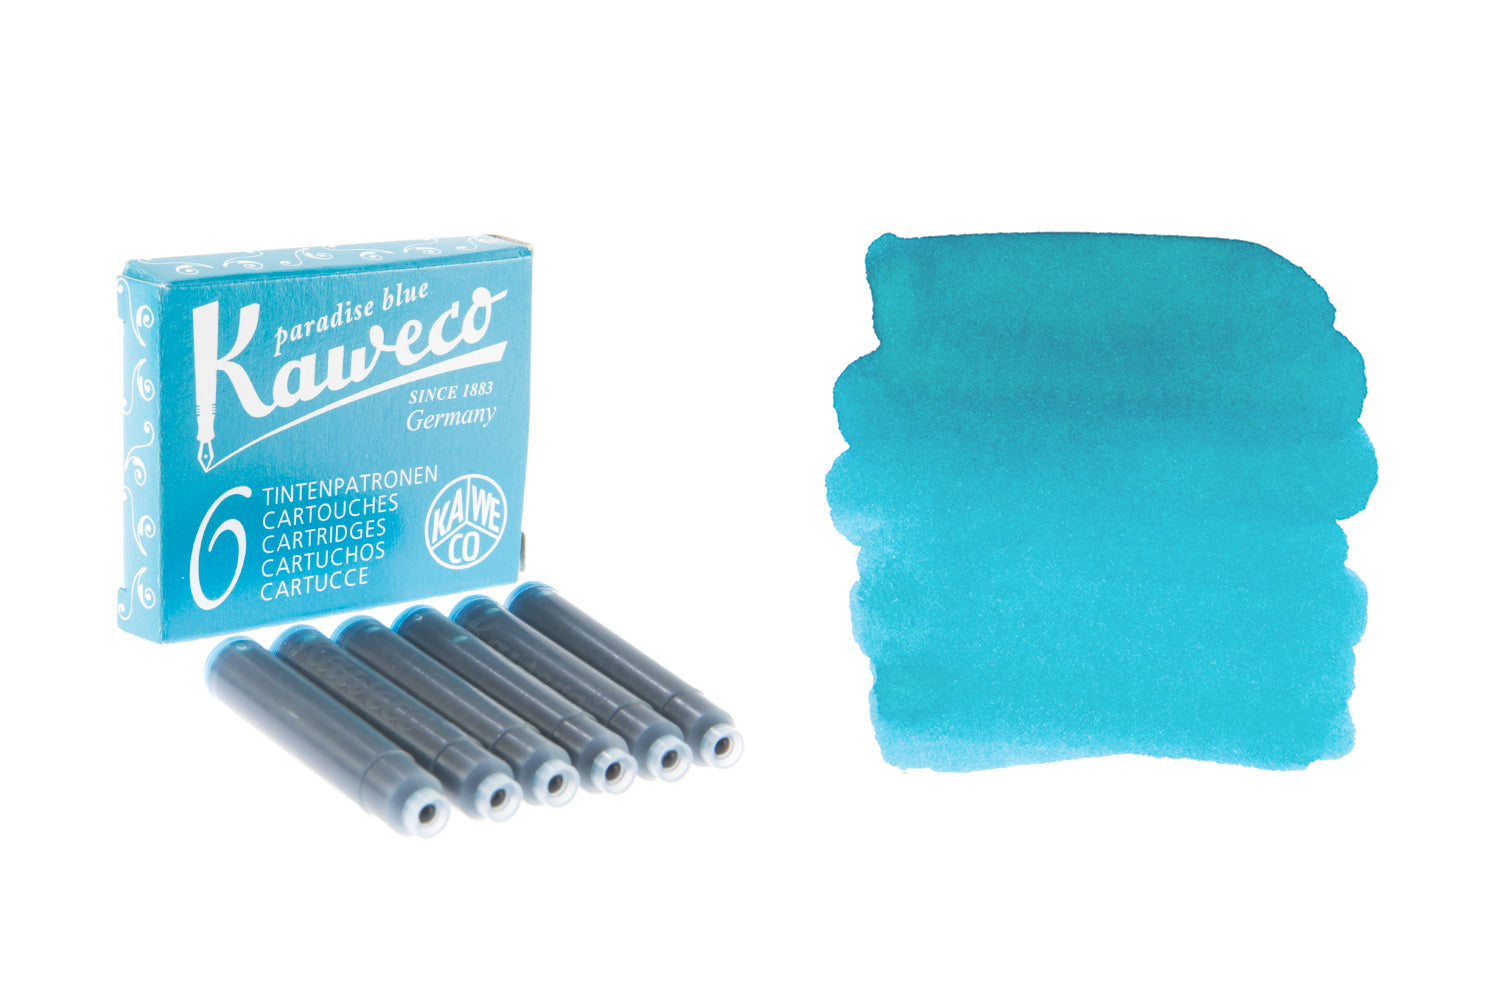 Kaweco Paradise Blue - Ink Cartridges